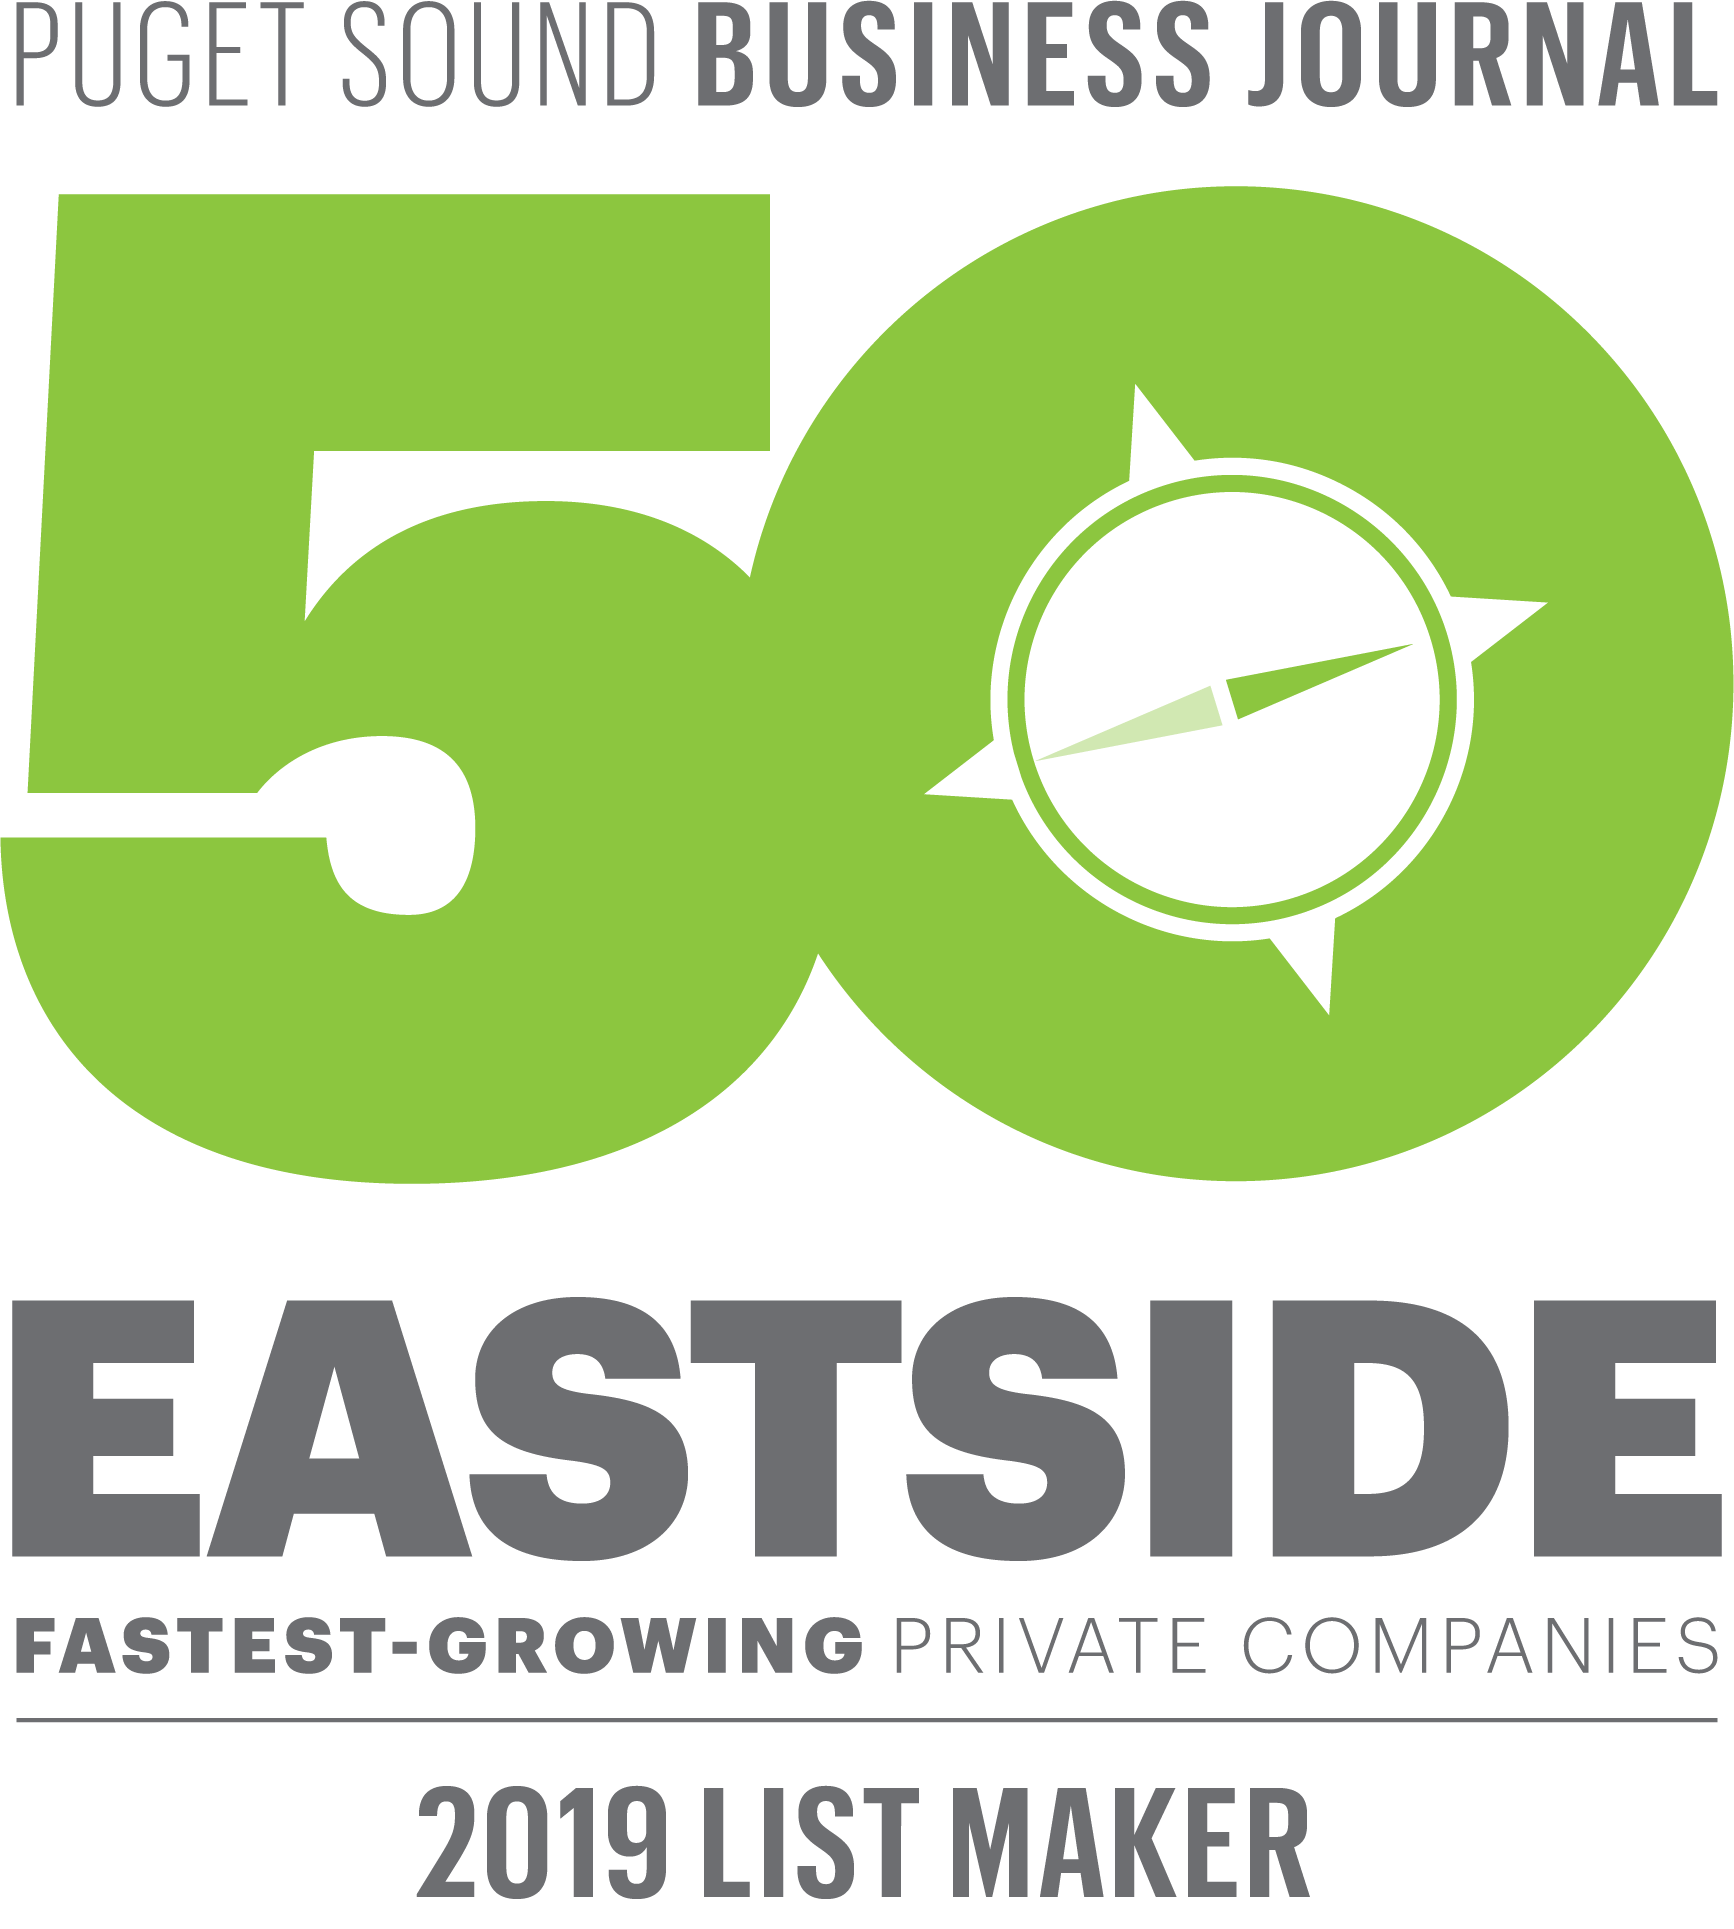 Fastest-growing Private Companies 2019